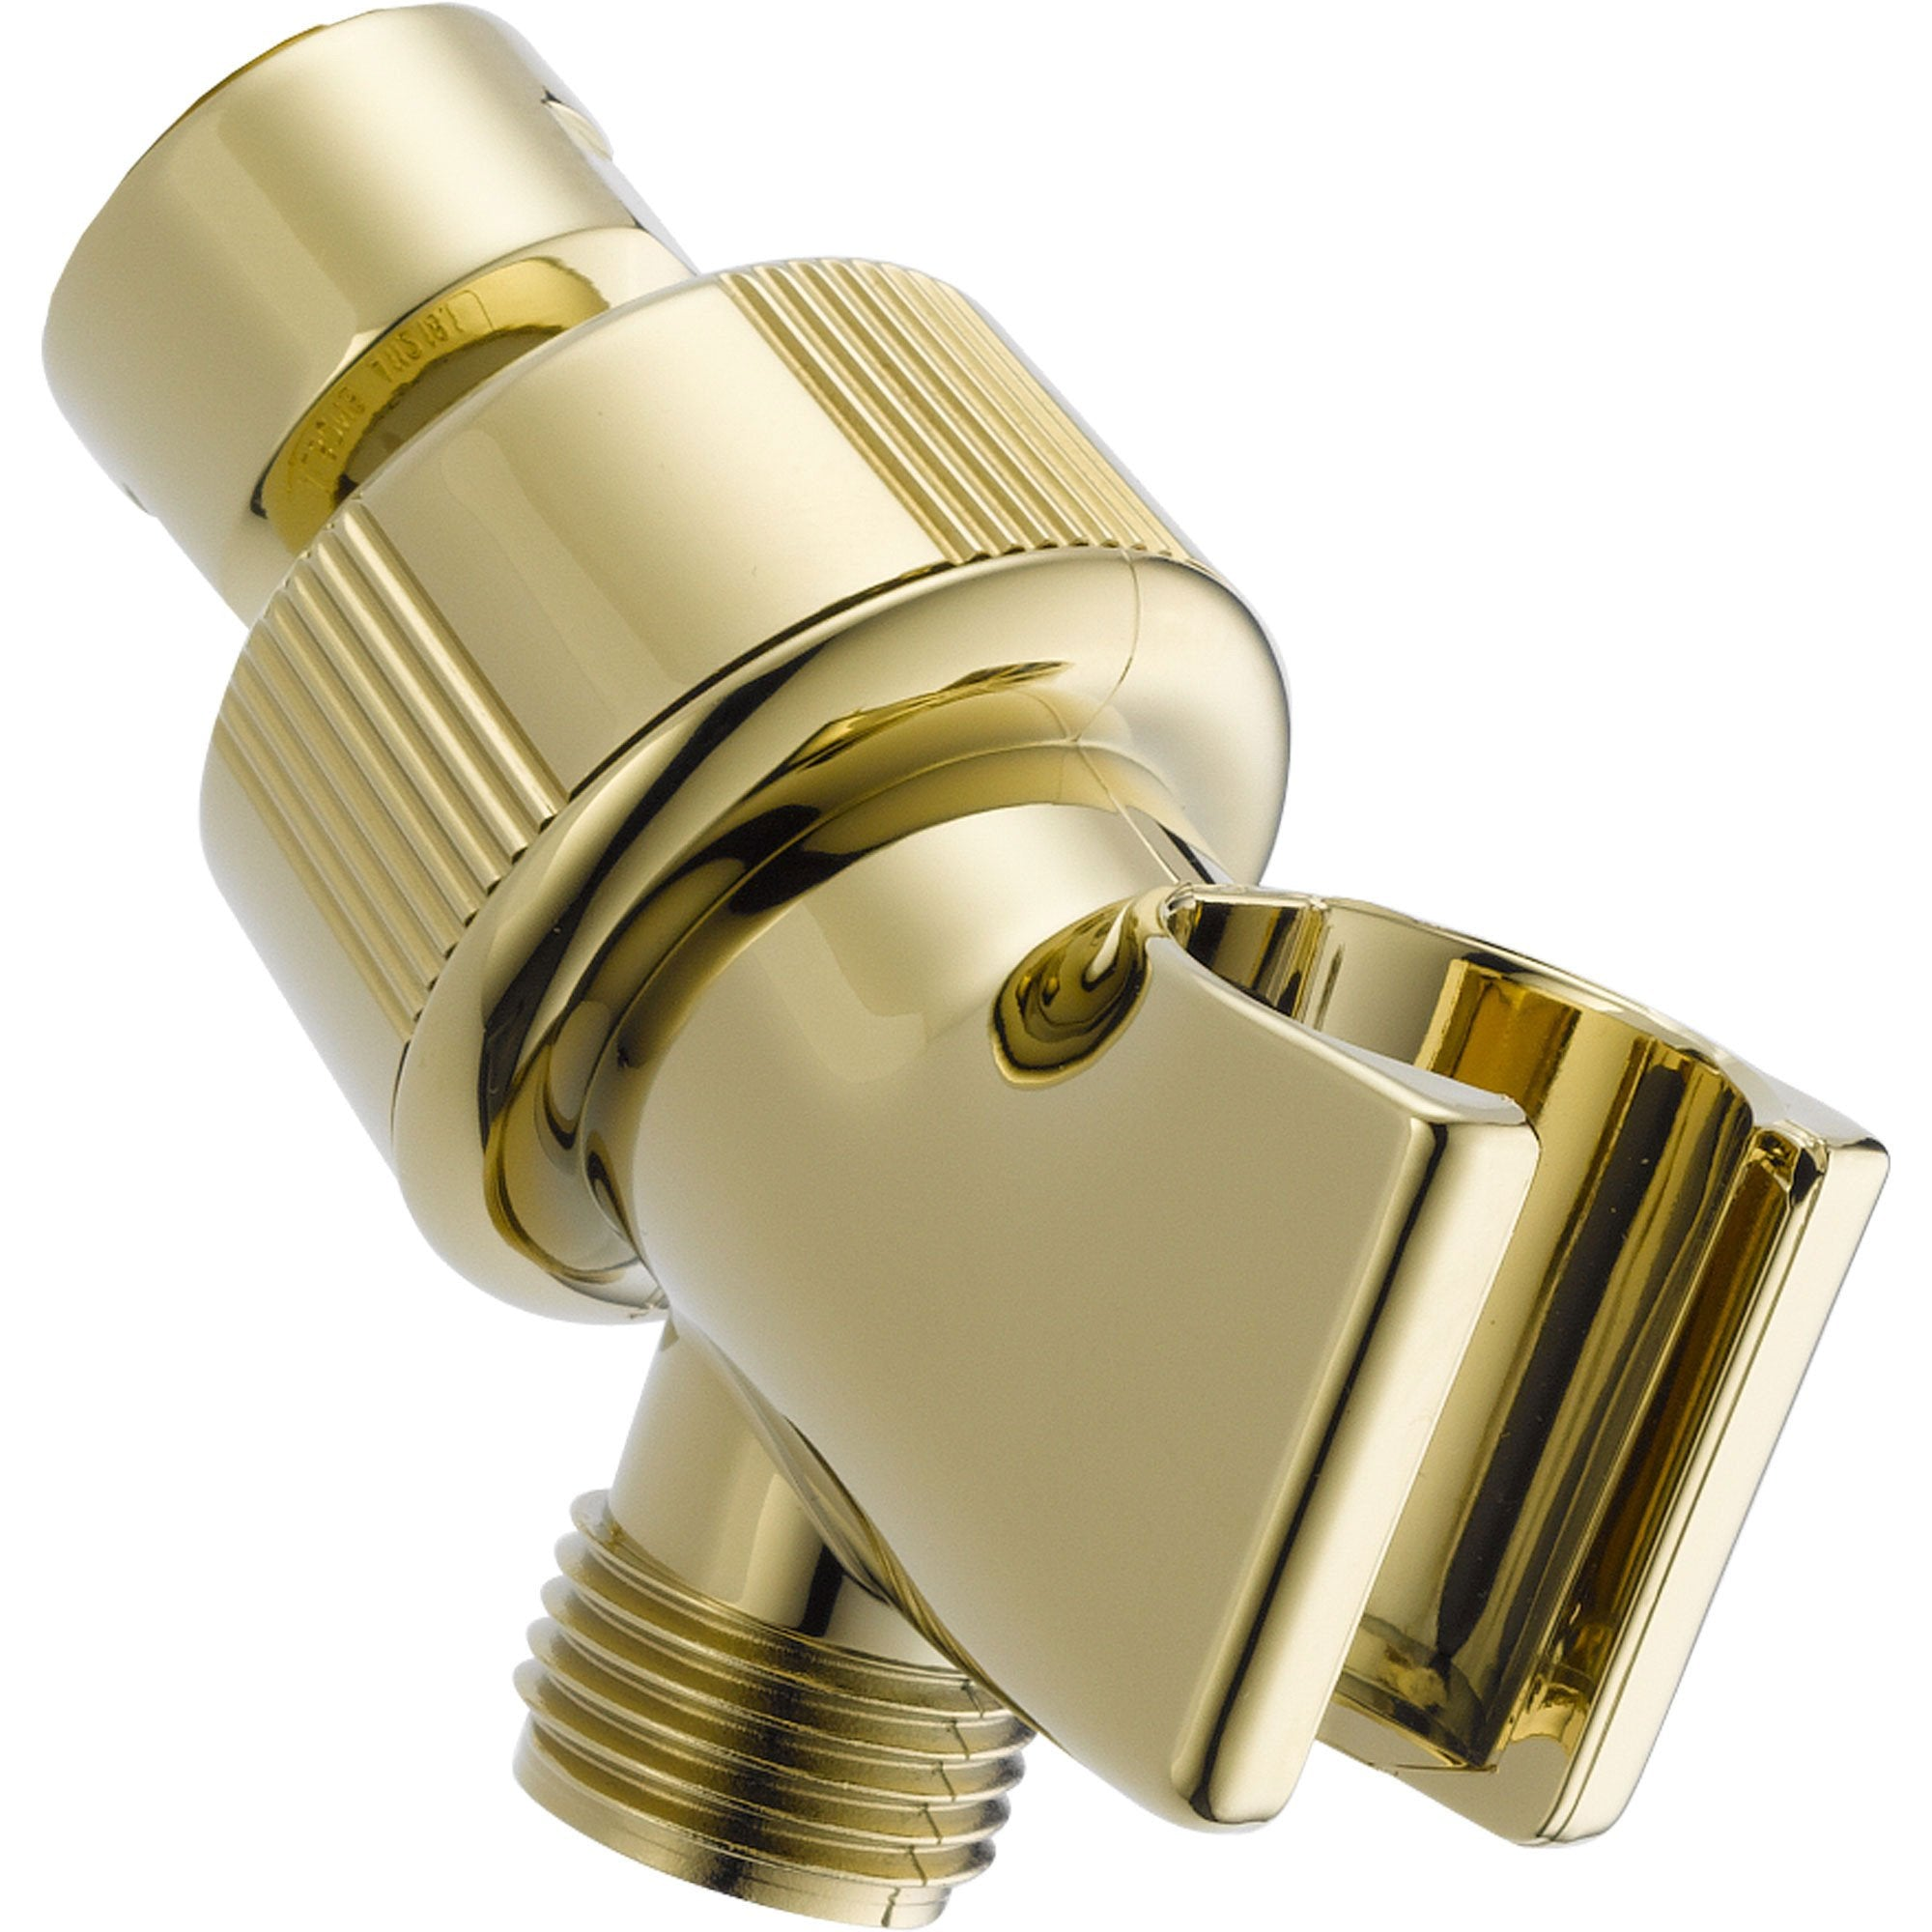 Delta Polished Brass Adjustable Shower Arm Mount for Handheld Shower 561307